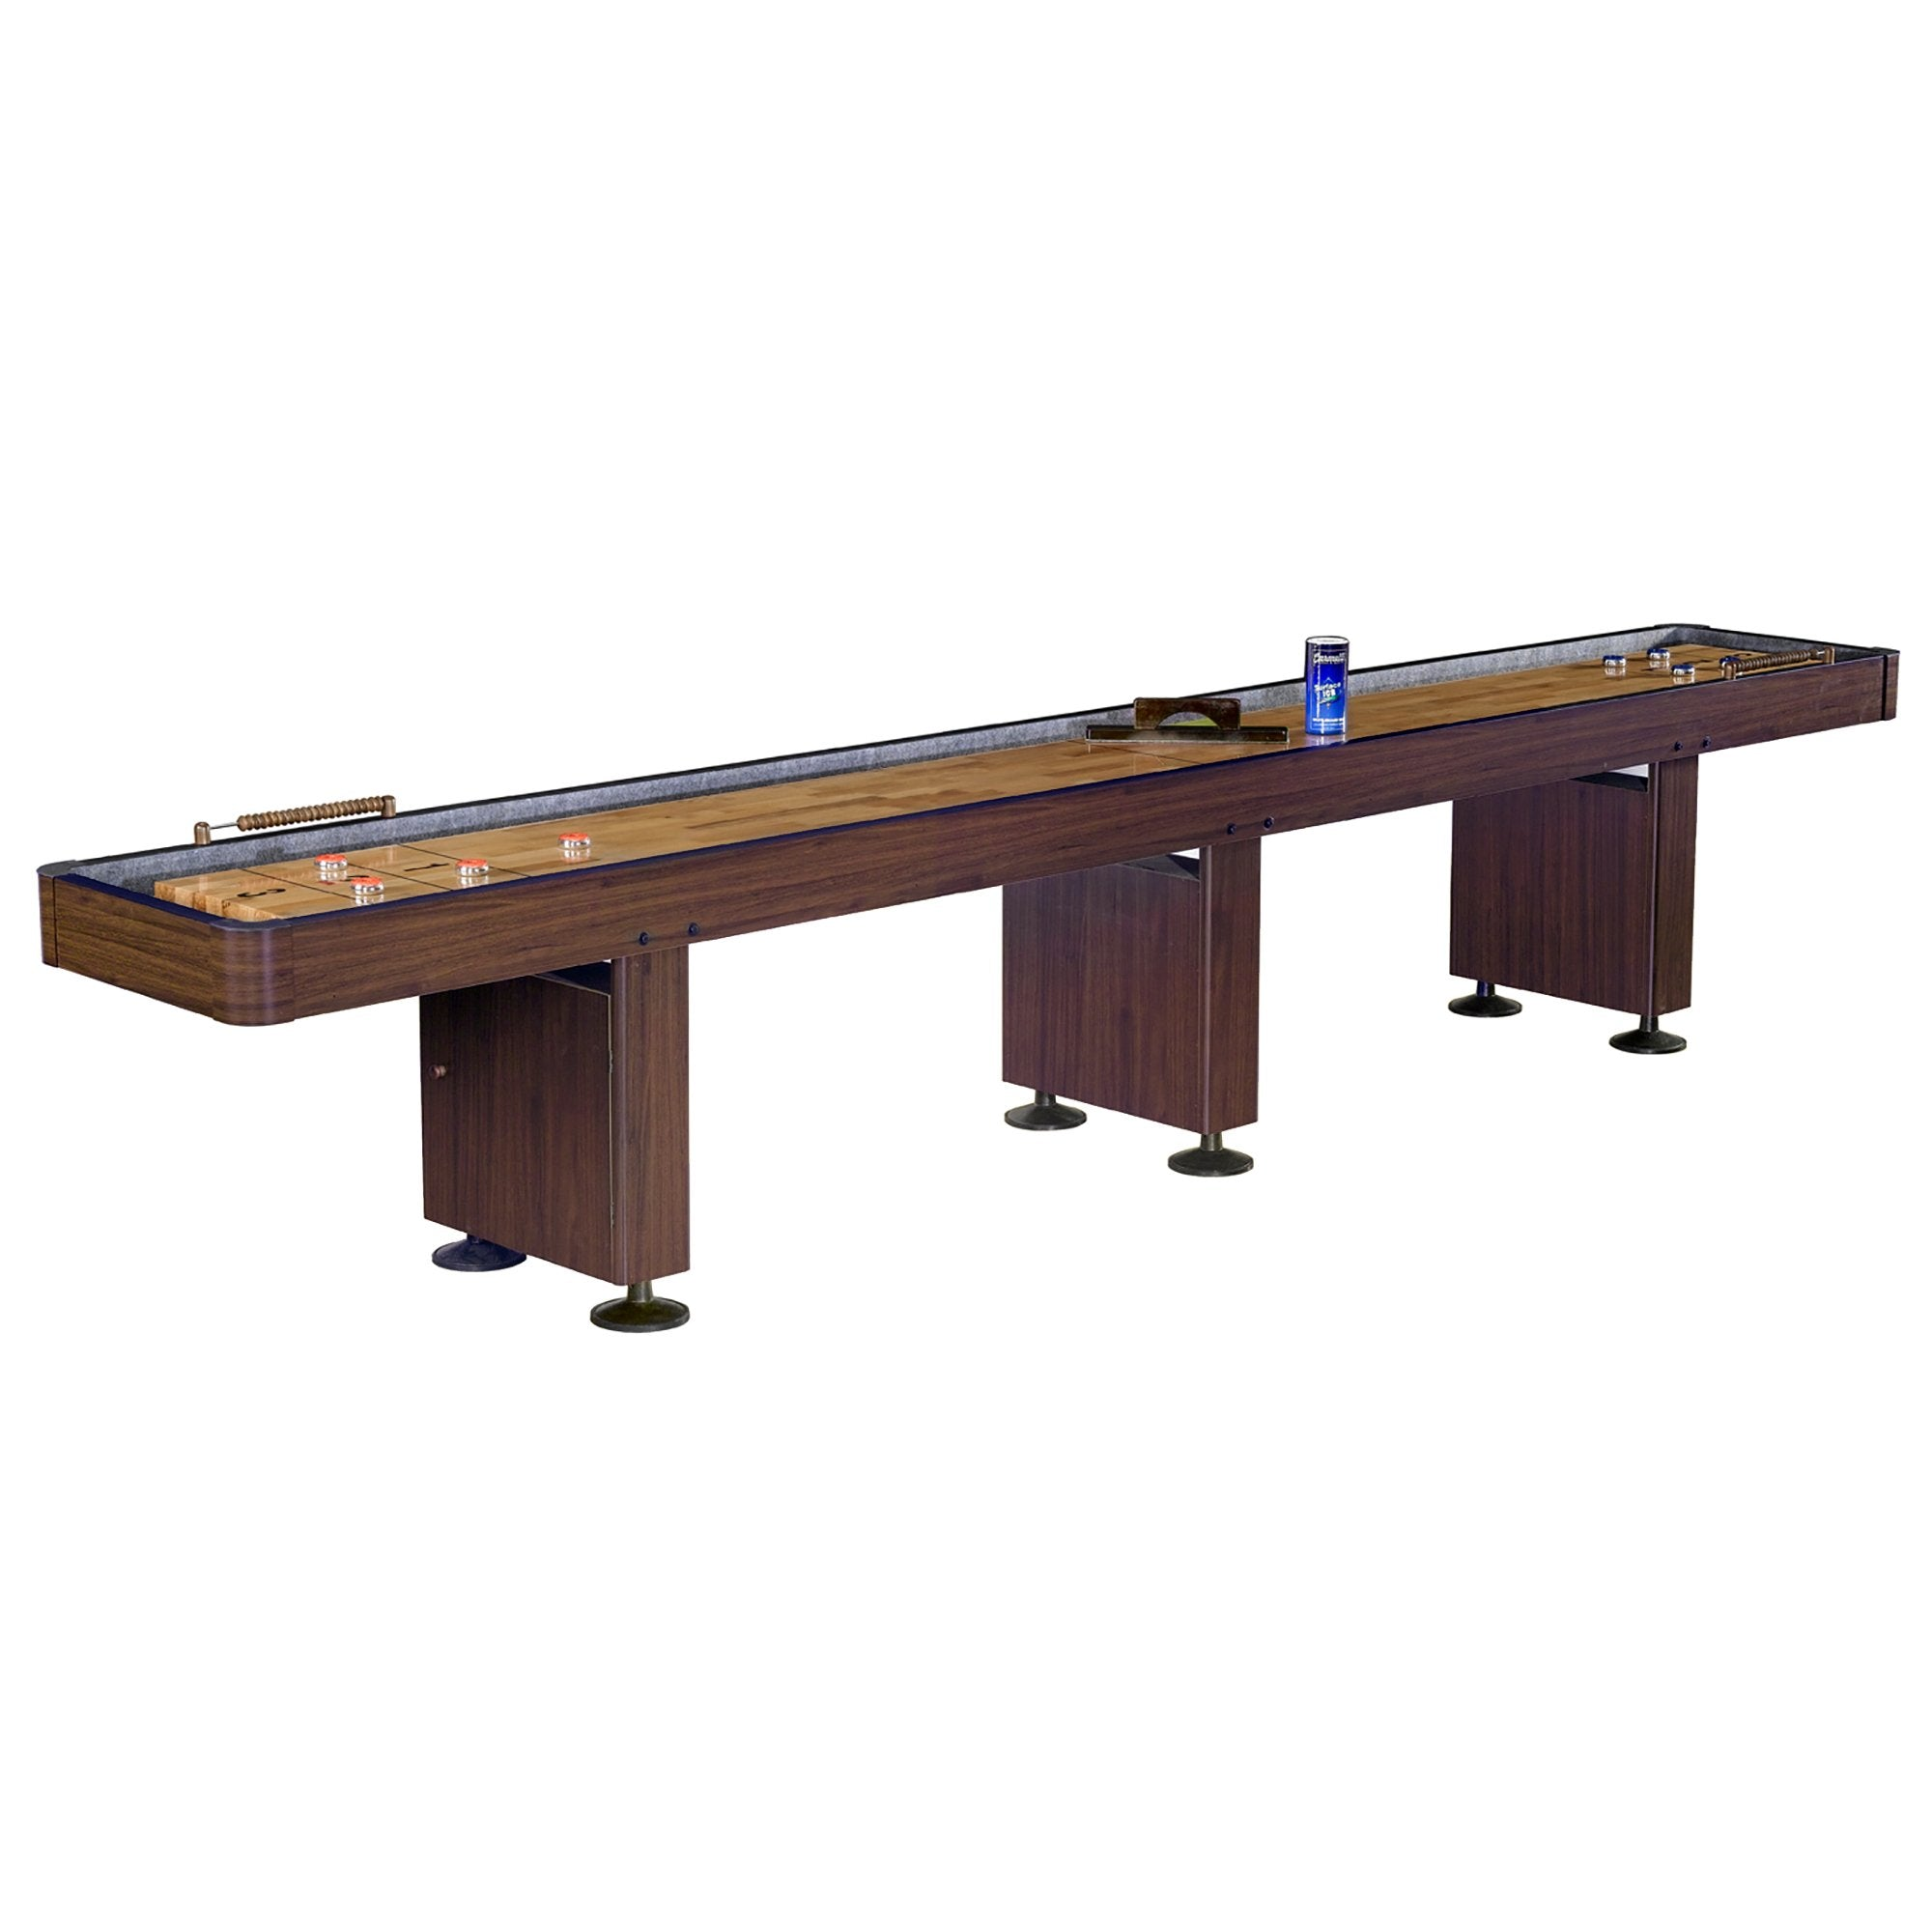 Hathaway Challenger Walnut 14ft Shuffleboard Table - Gaming Blaze